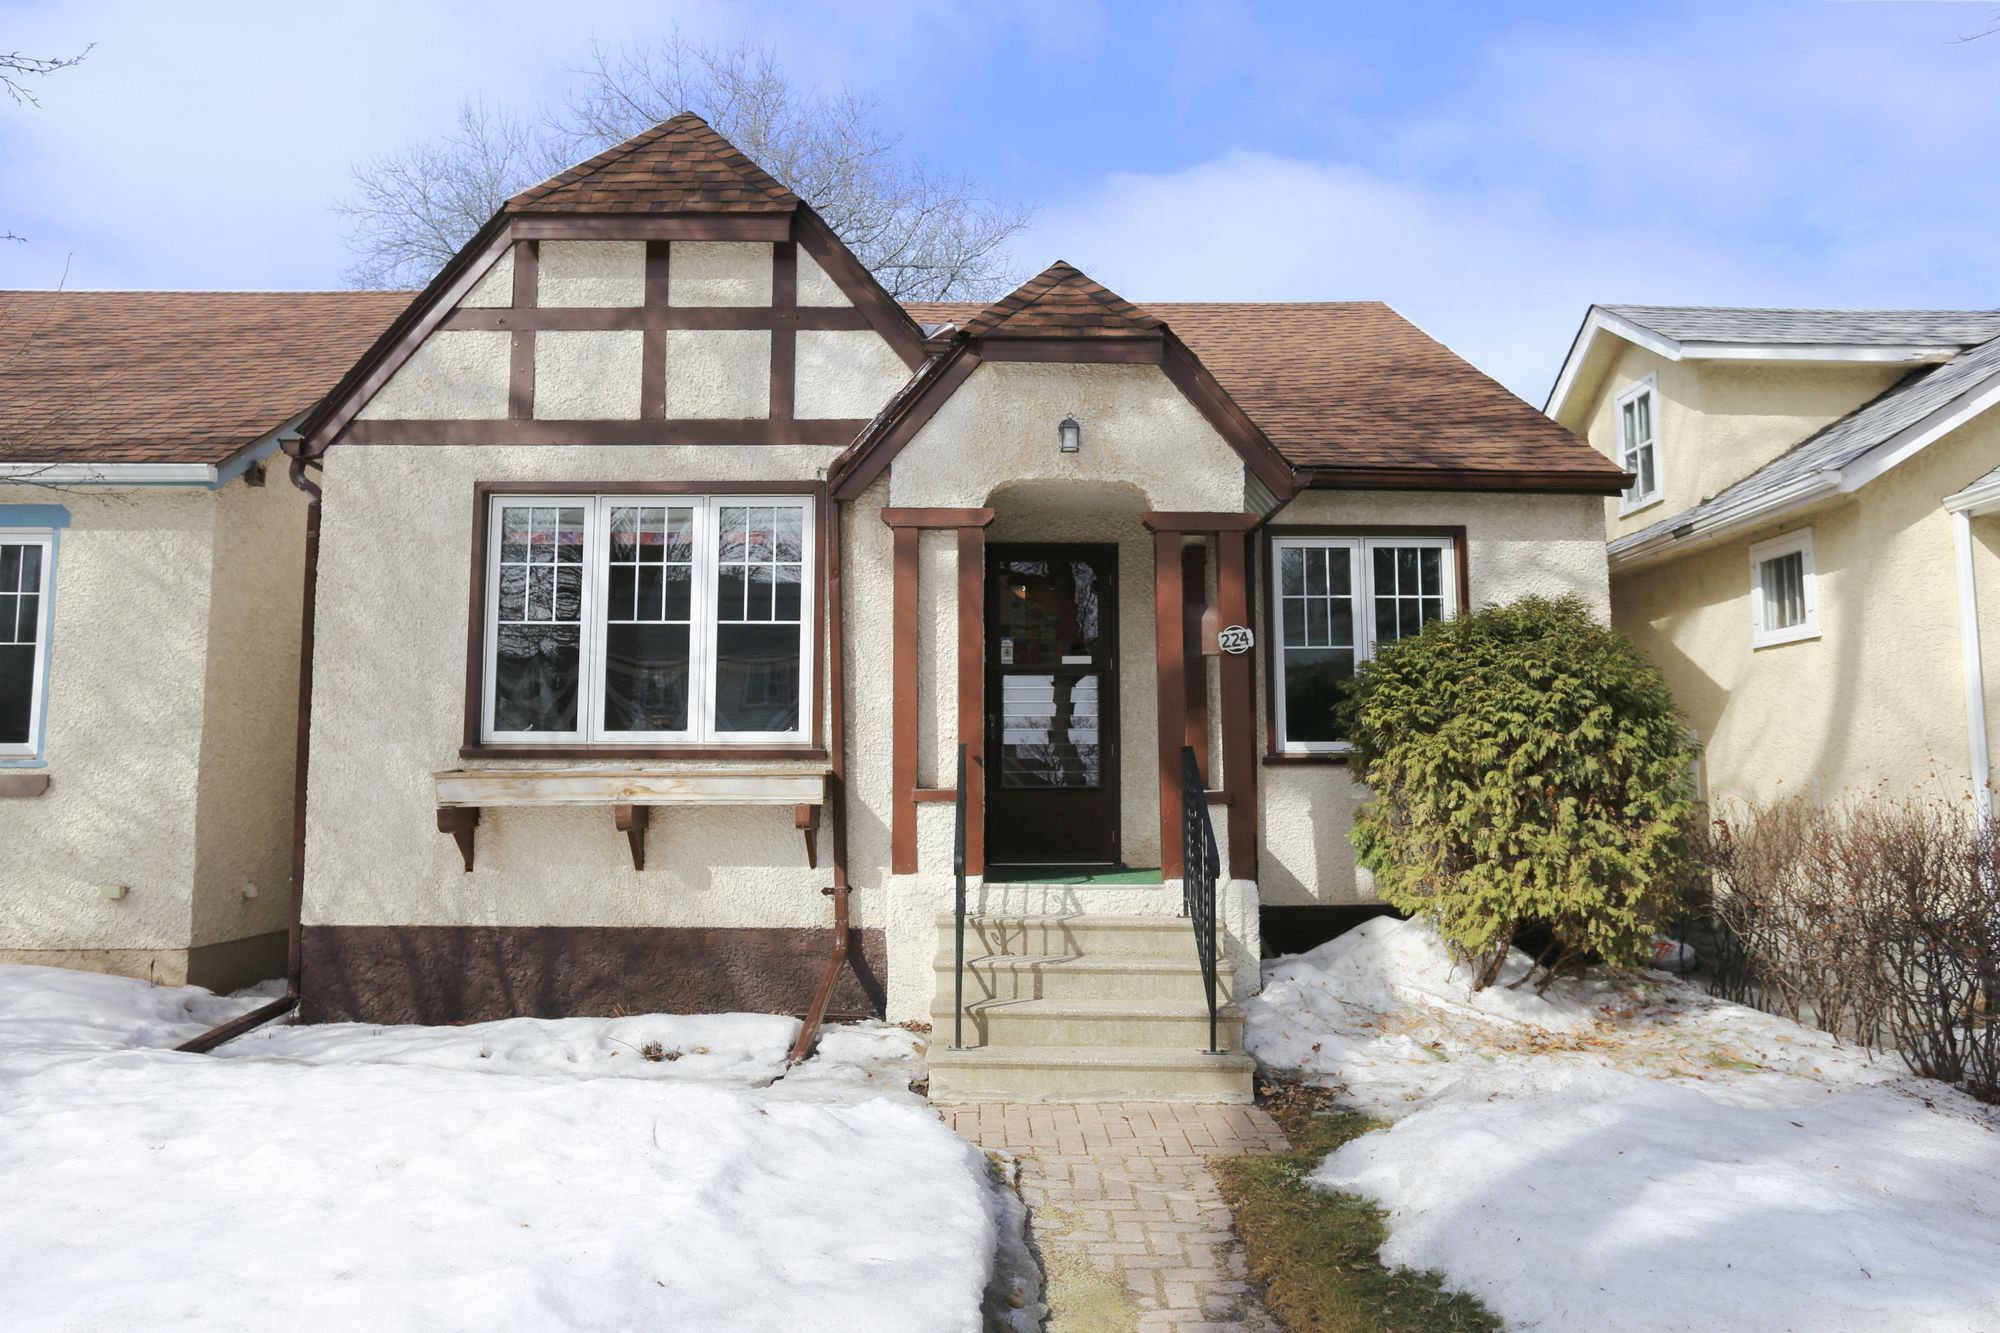 Welcome to 224 Lenore St. in Wolseley